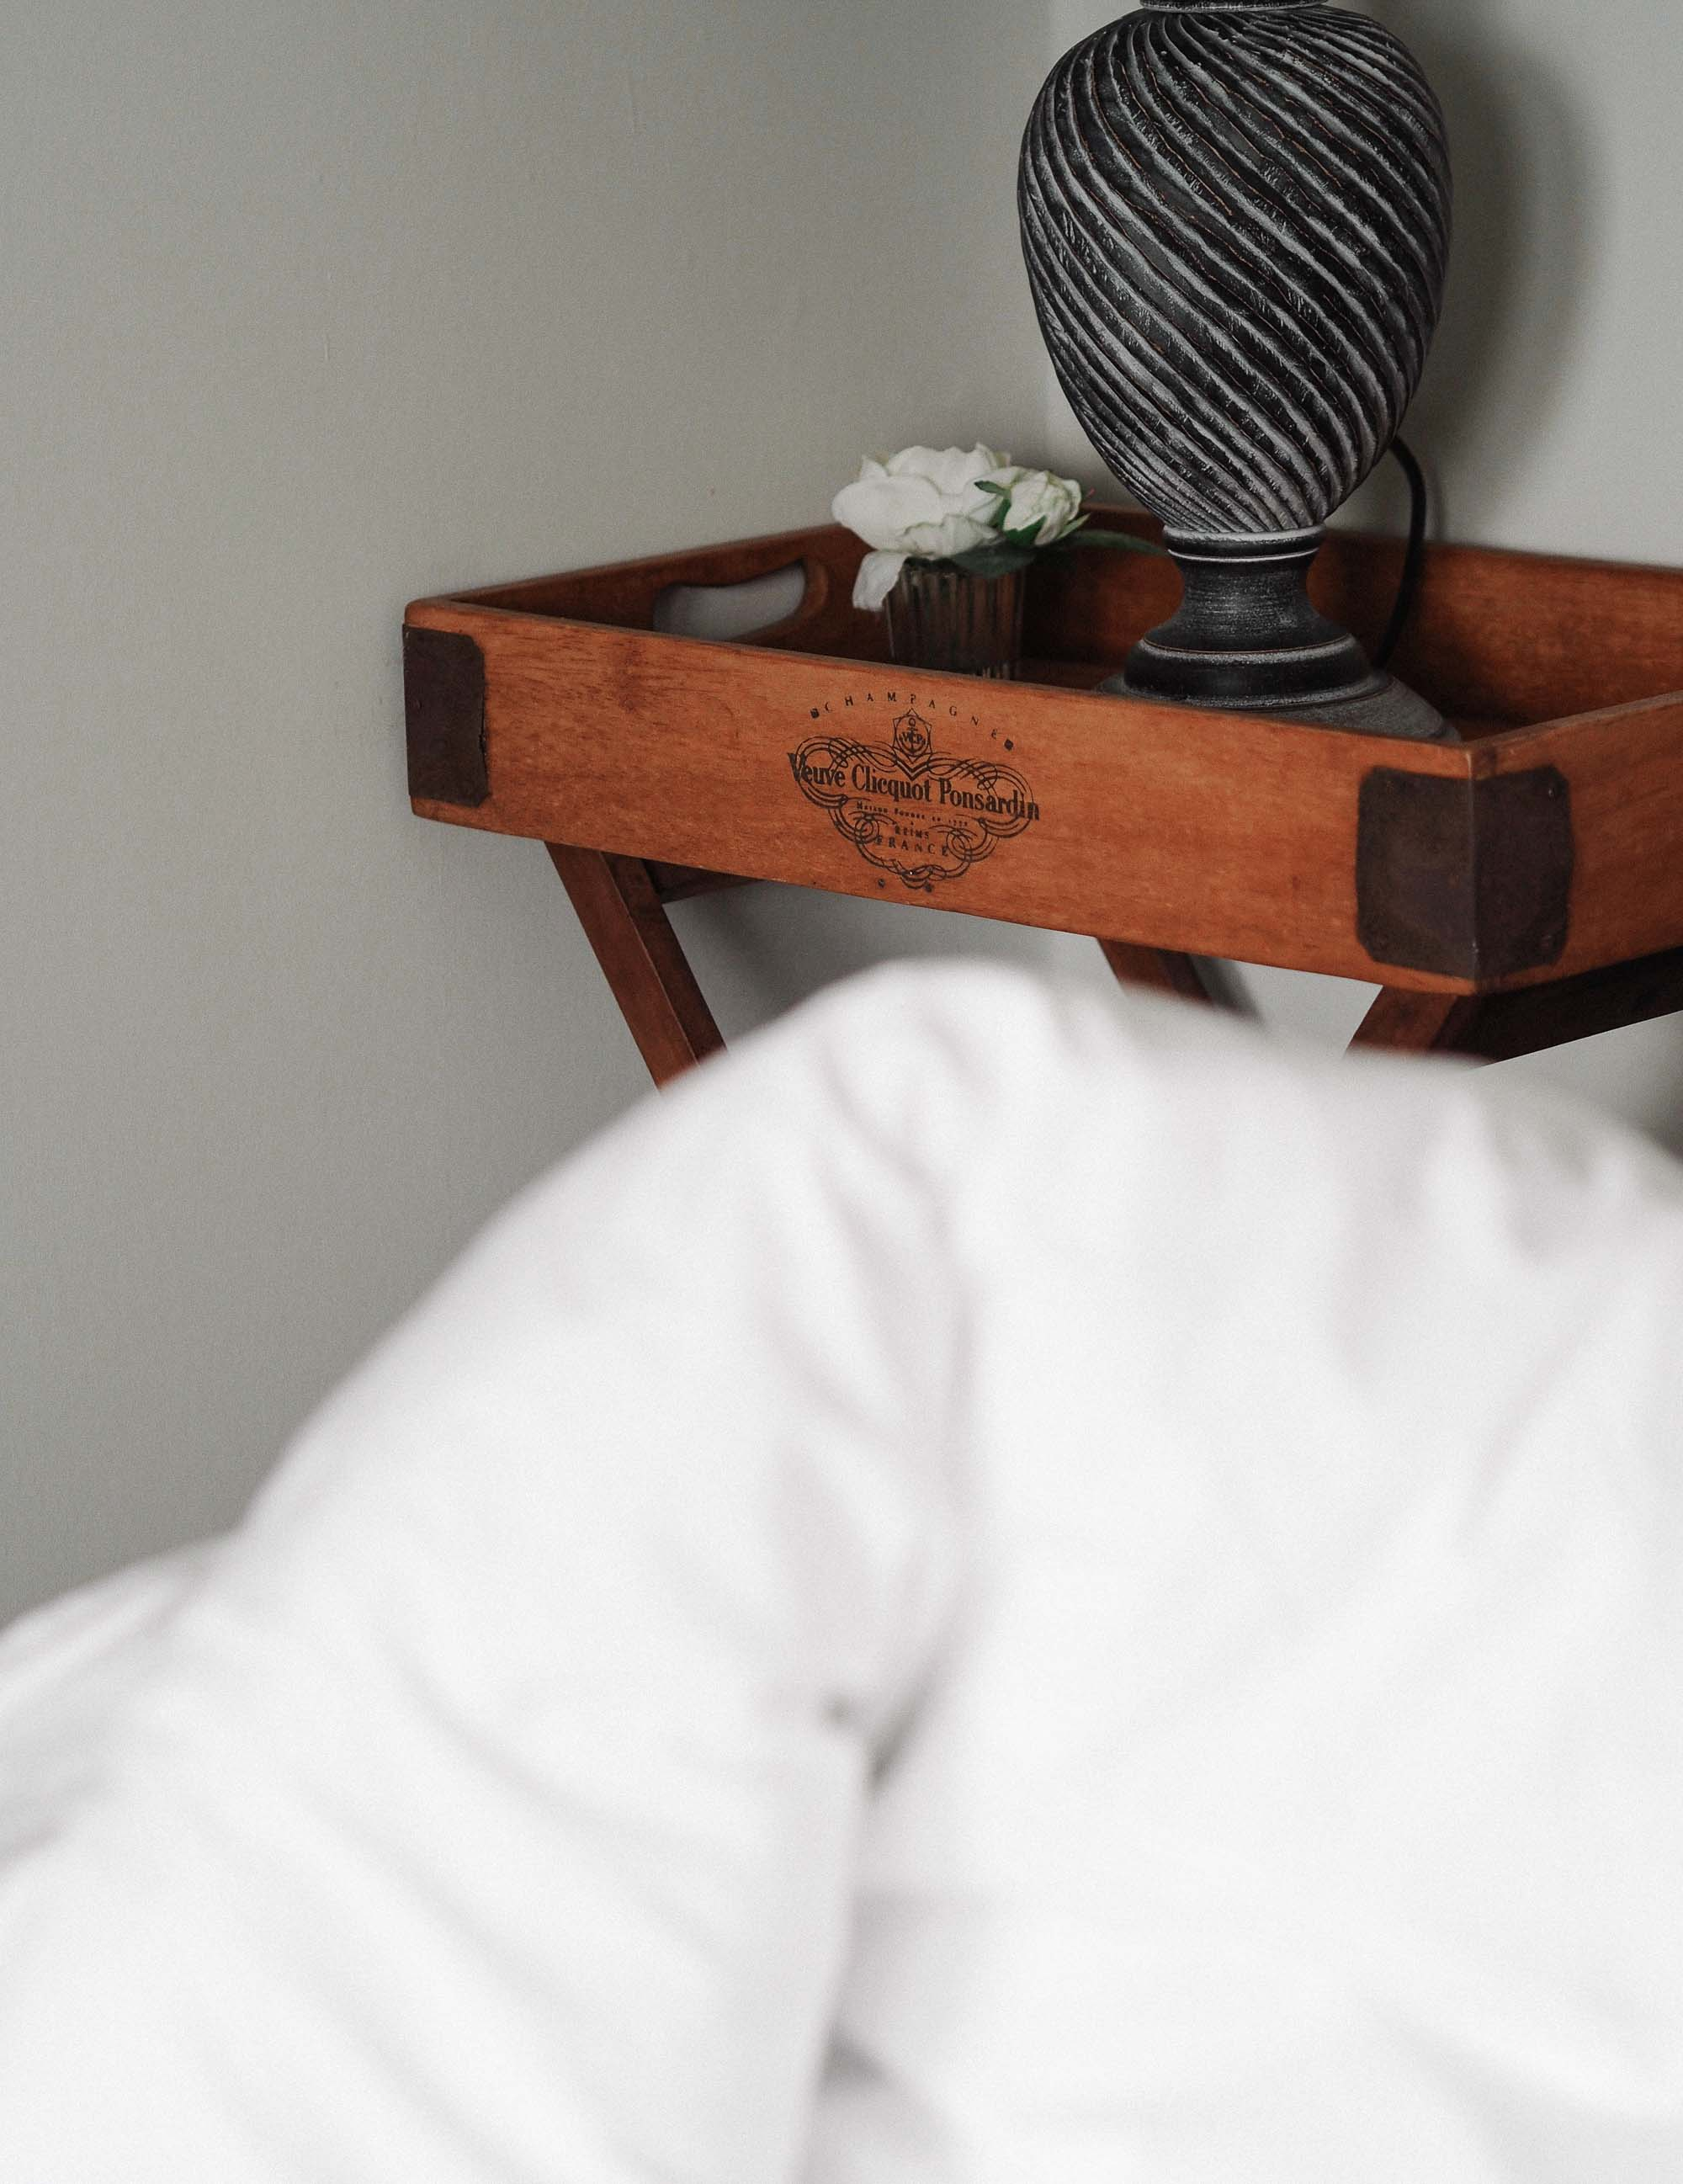 5 Veuve clicquot tray as nightstand.jpg